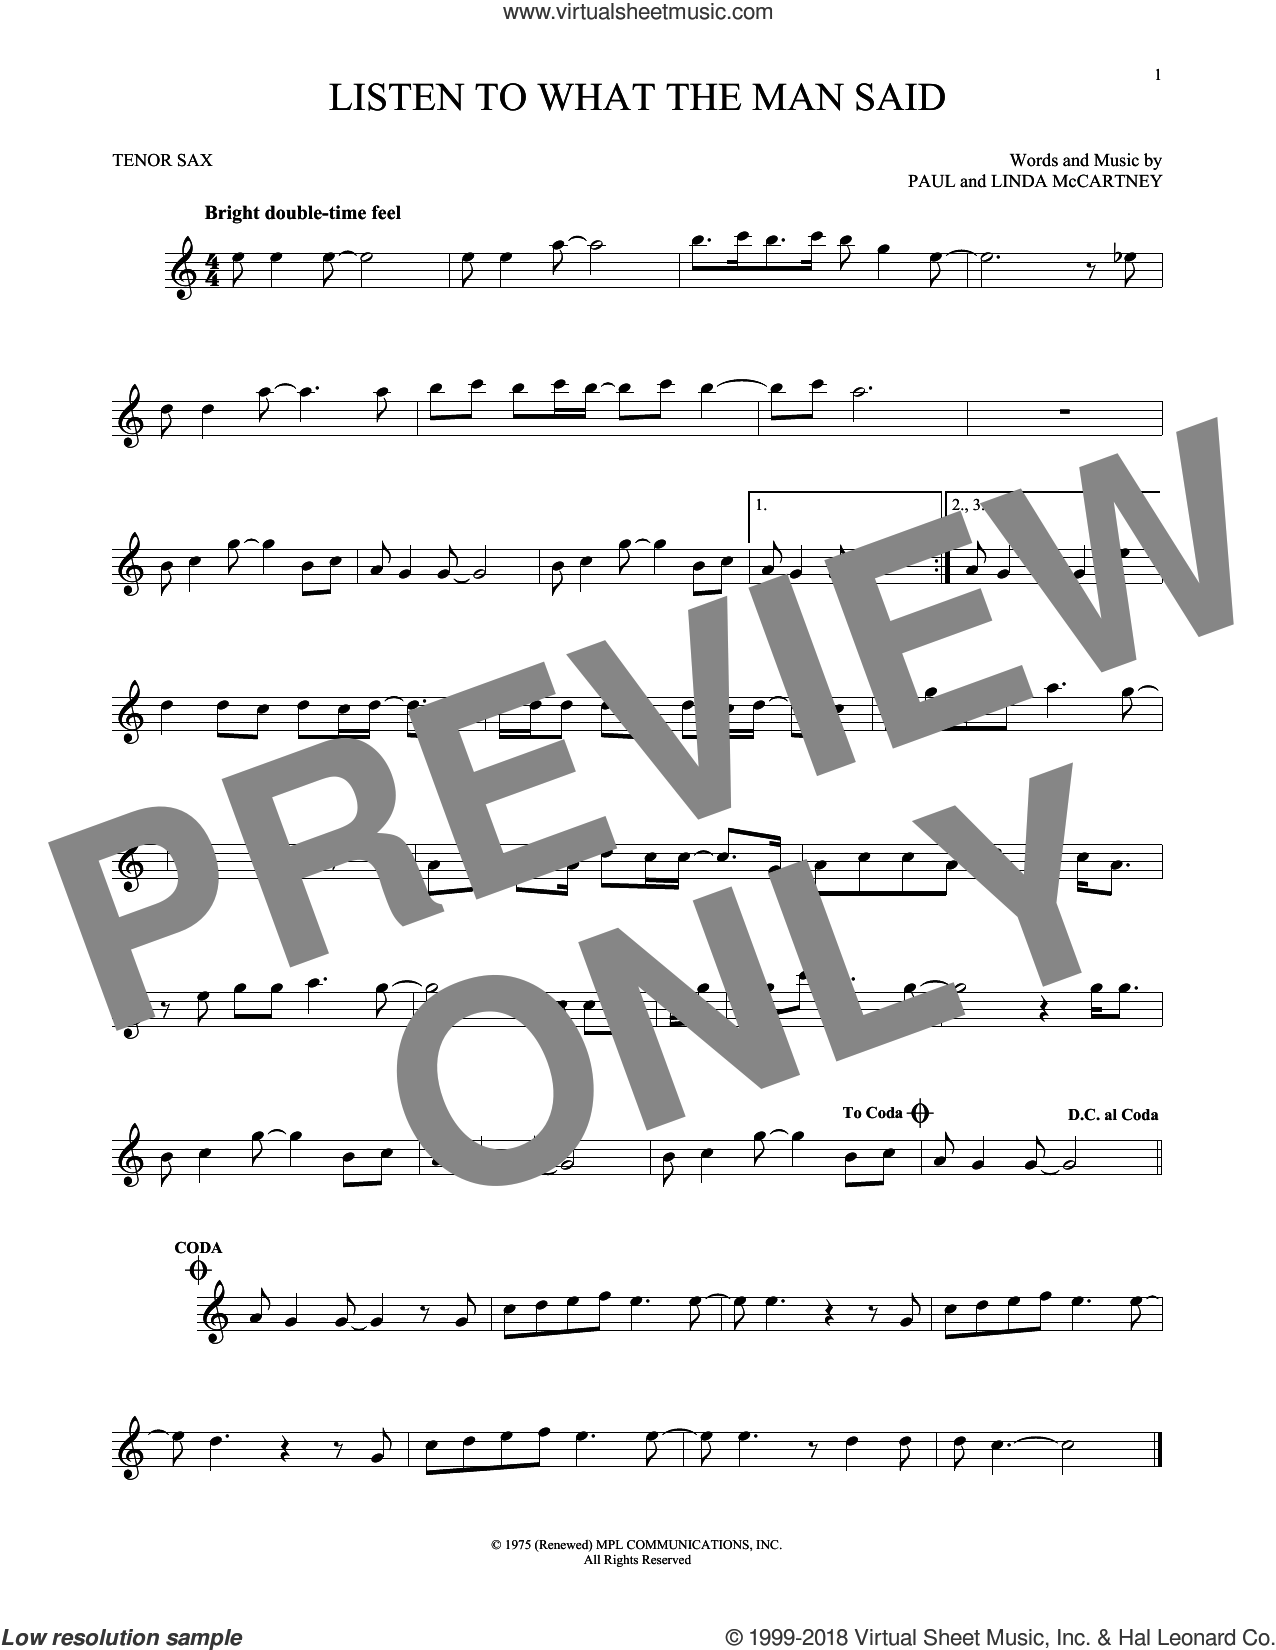 Listen To What The Man Said sheet music for tenor saxophone solo by Wings, Linda McCartney and Paul McCartney, intermediate skill level